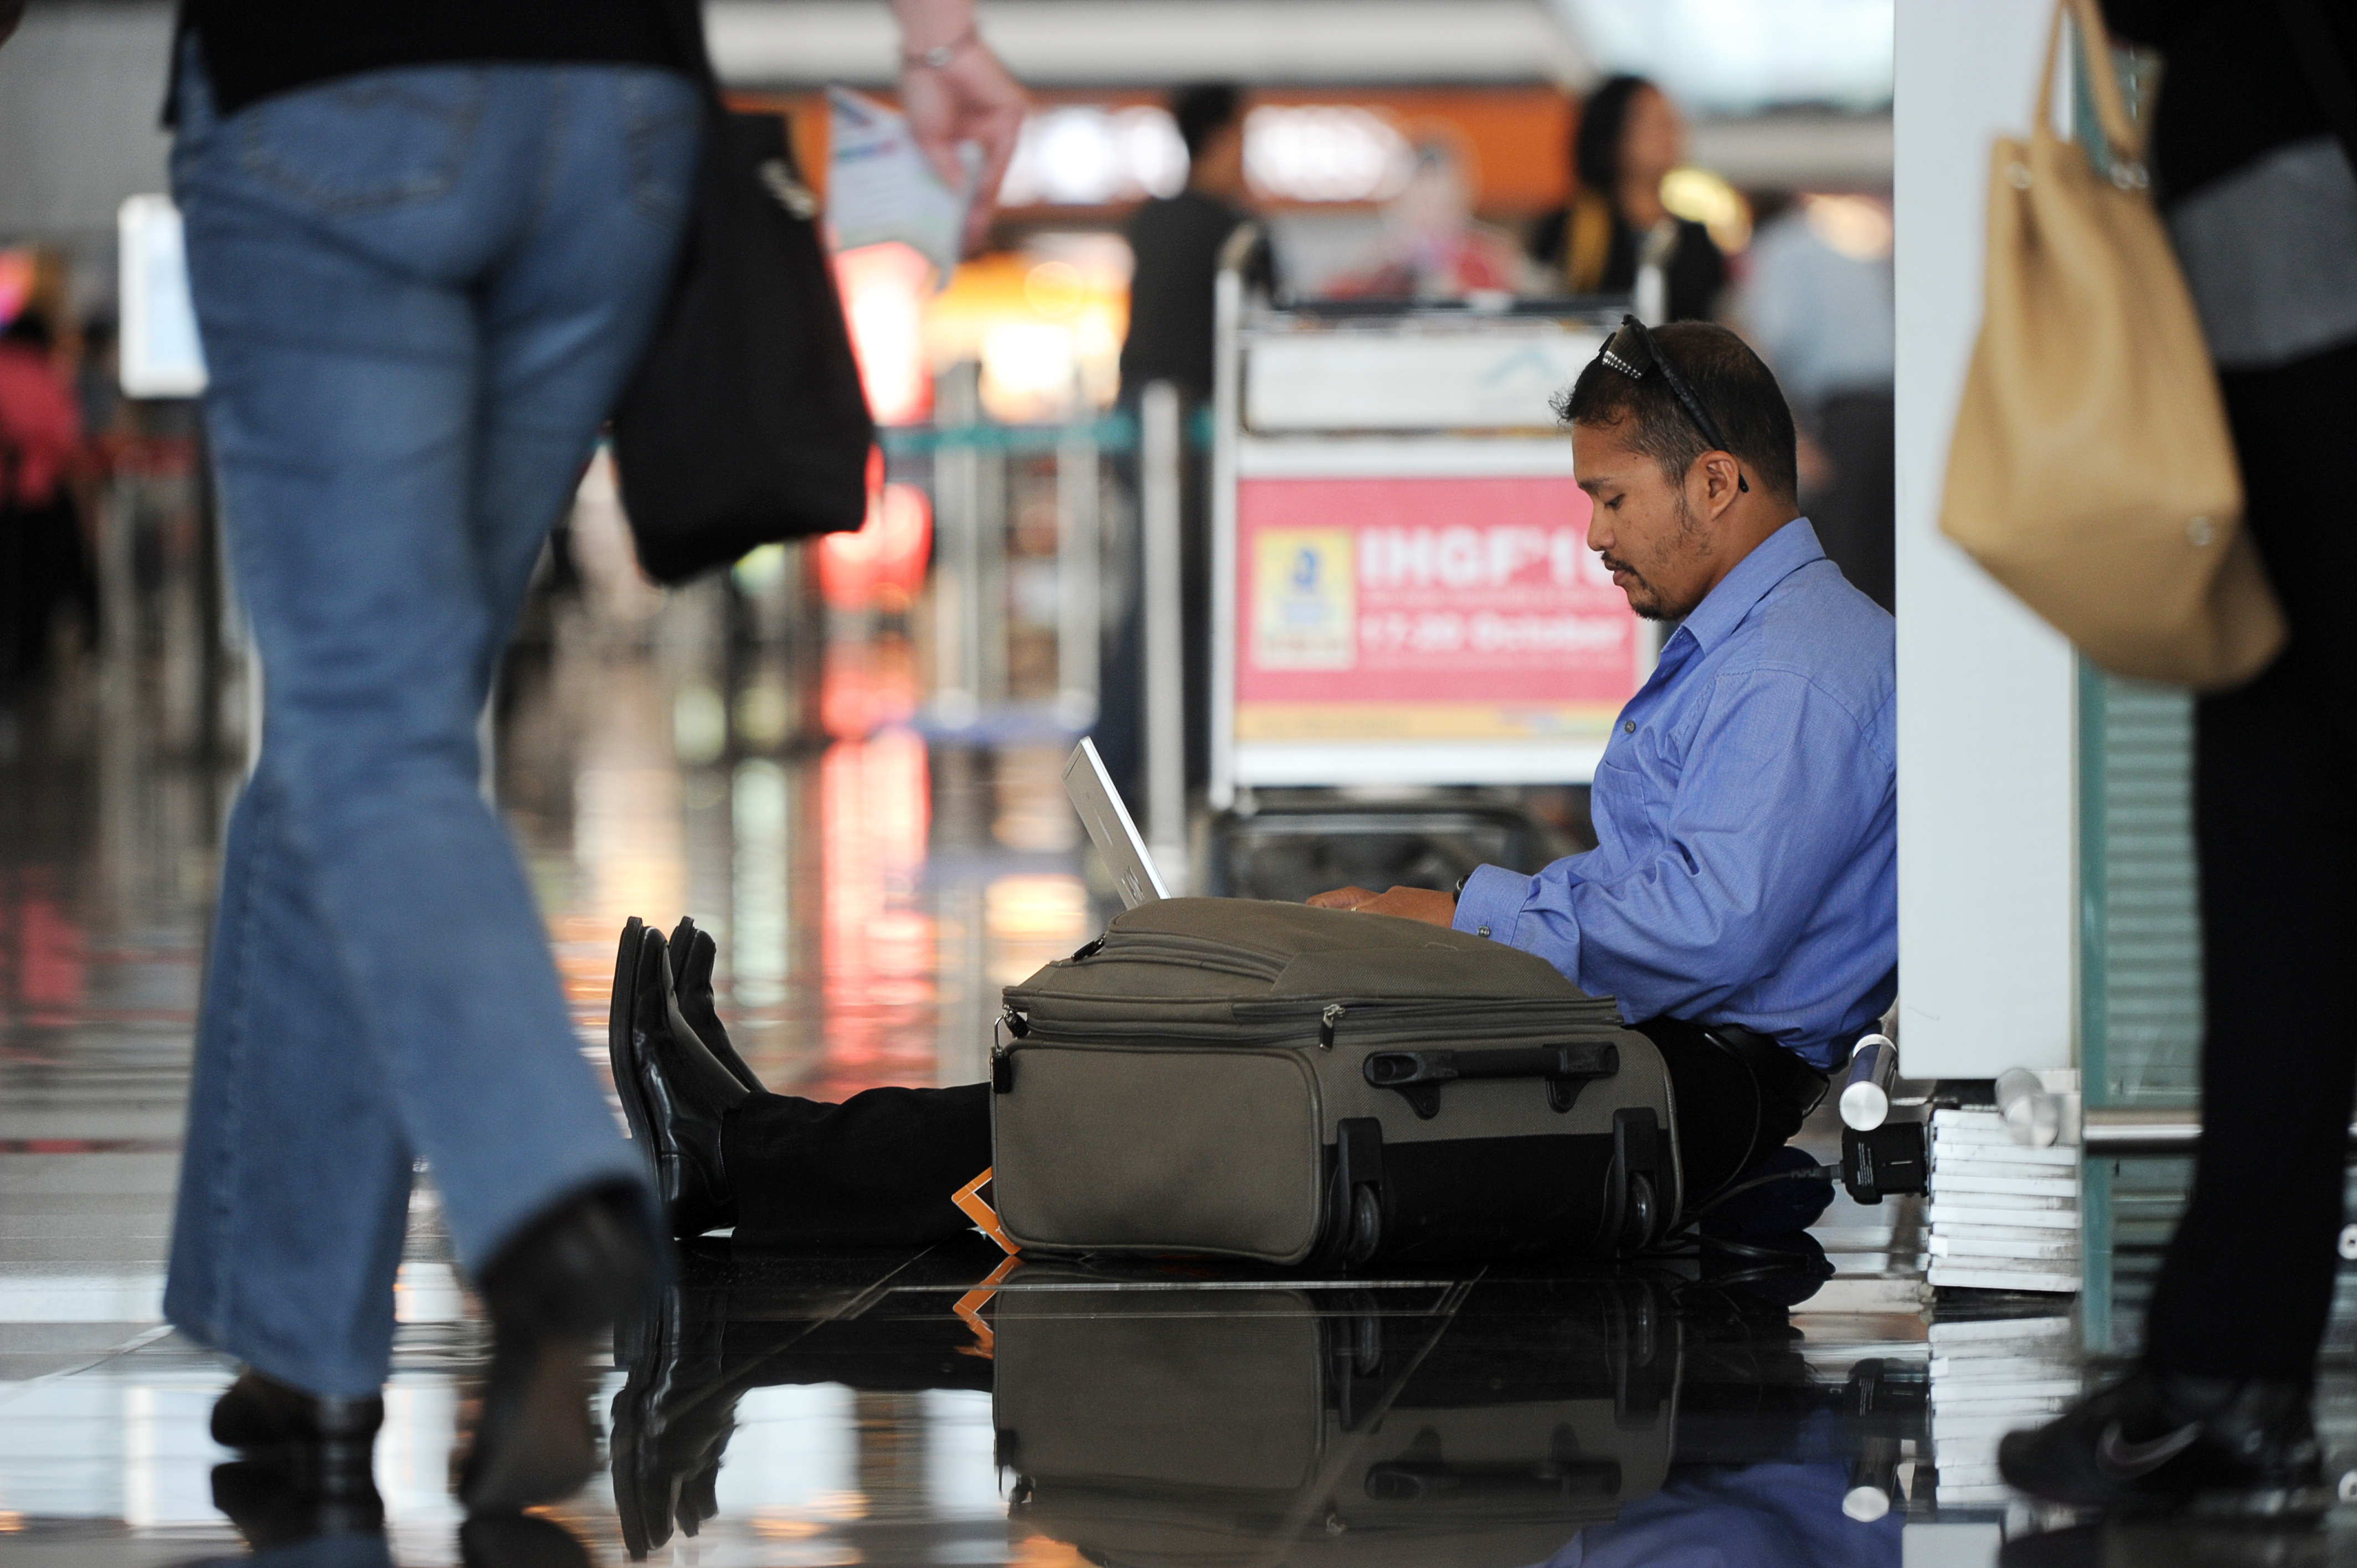 A man uses his laptop while waiting at H